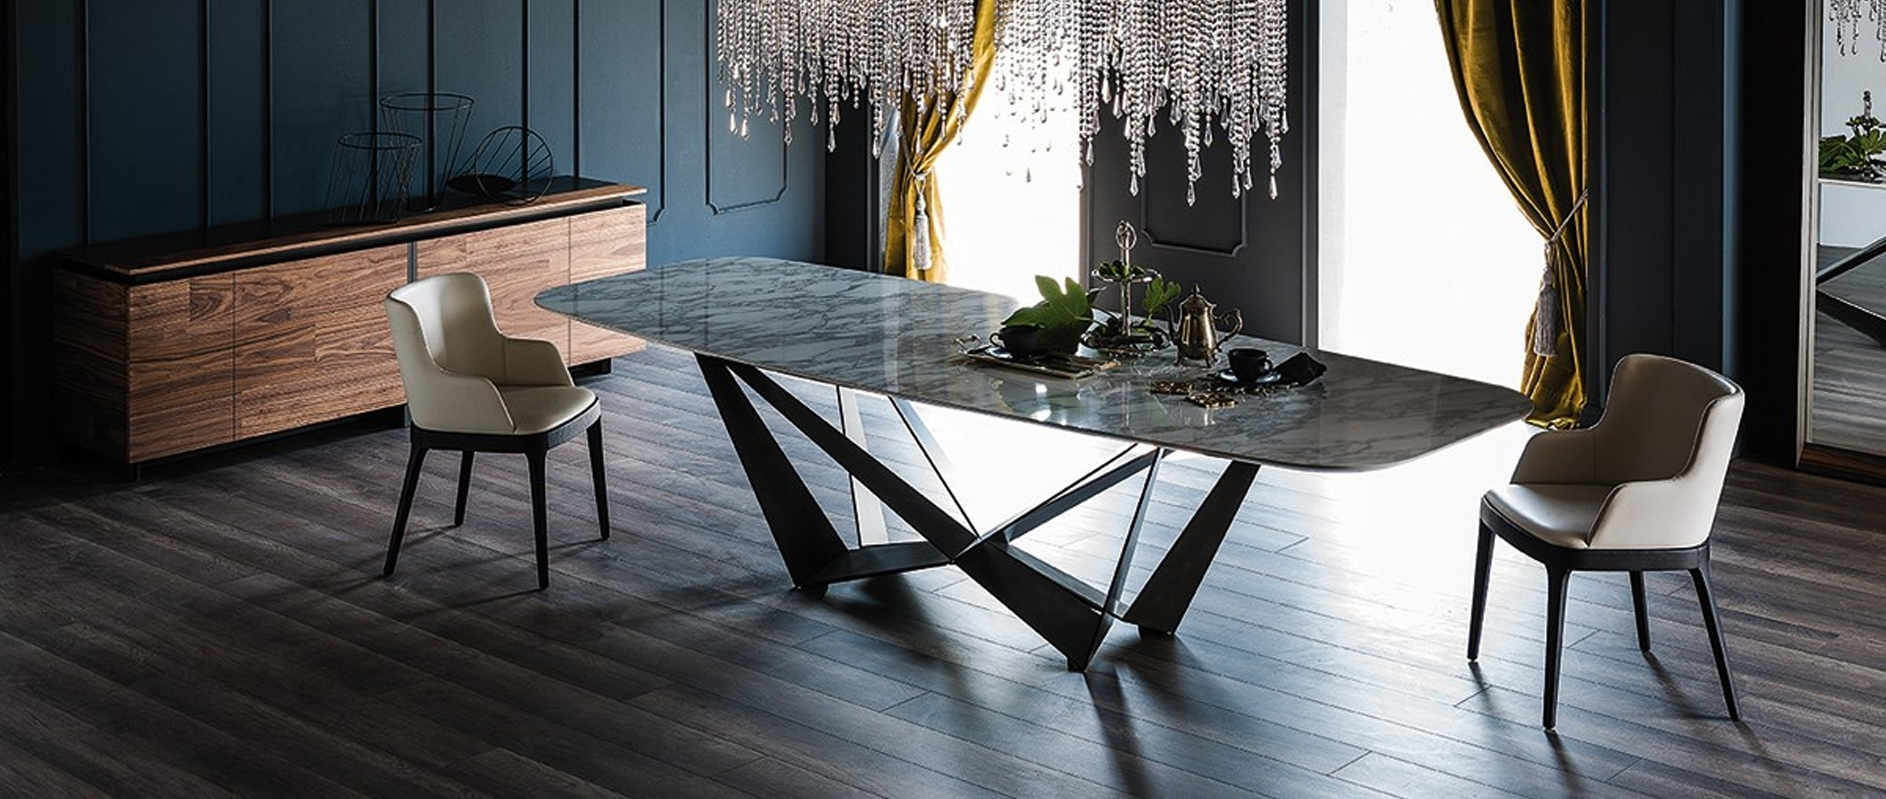 Modern Dining Room Furniture – Modern Dining Tables, Dining Chairs In Most Up To Date Modern Dining Tables (View 8 of 25)